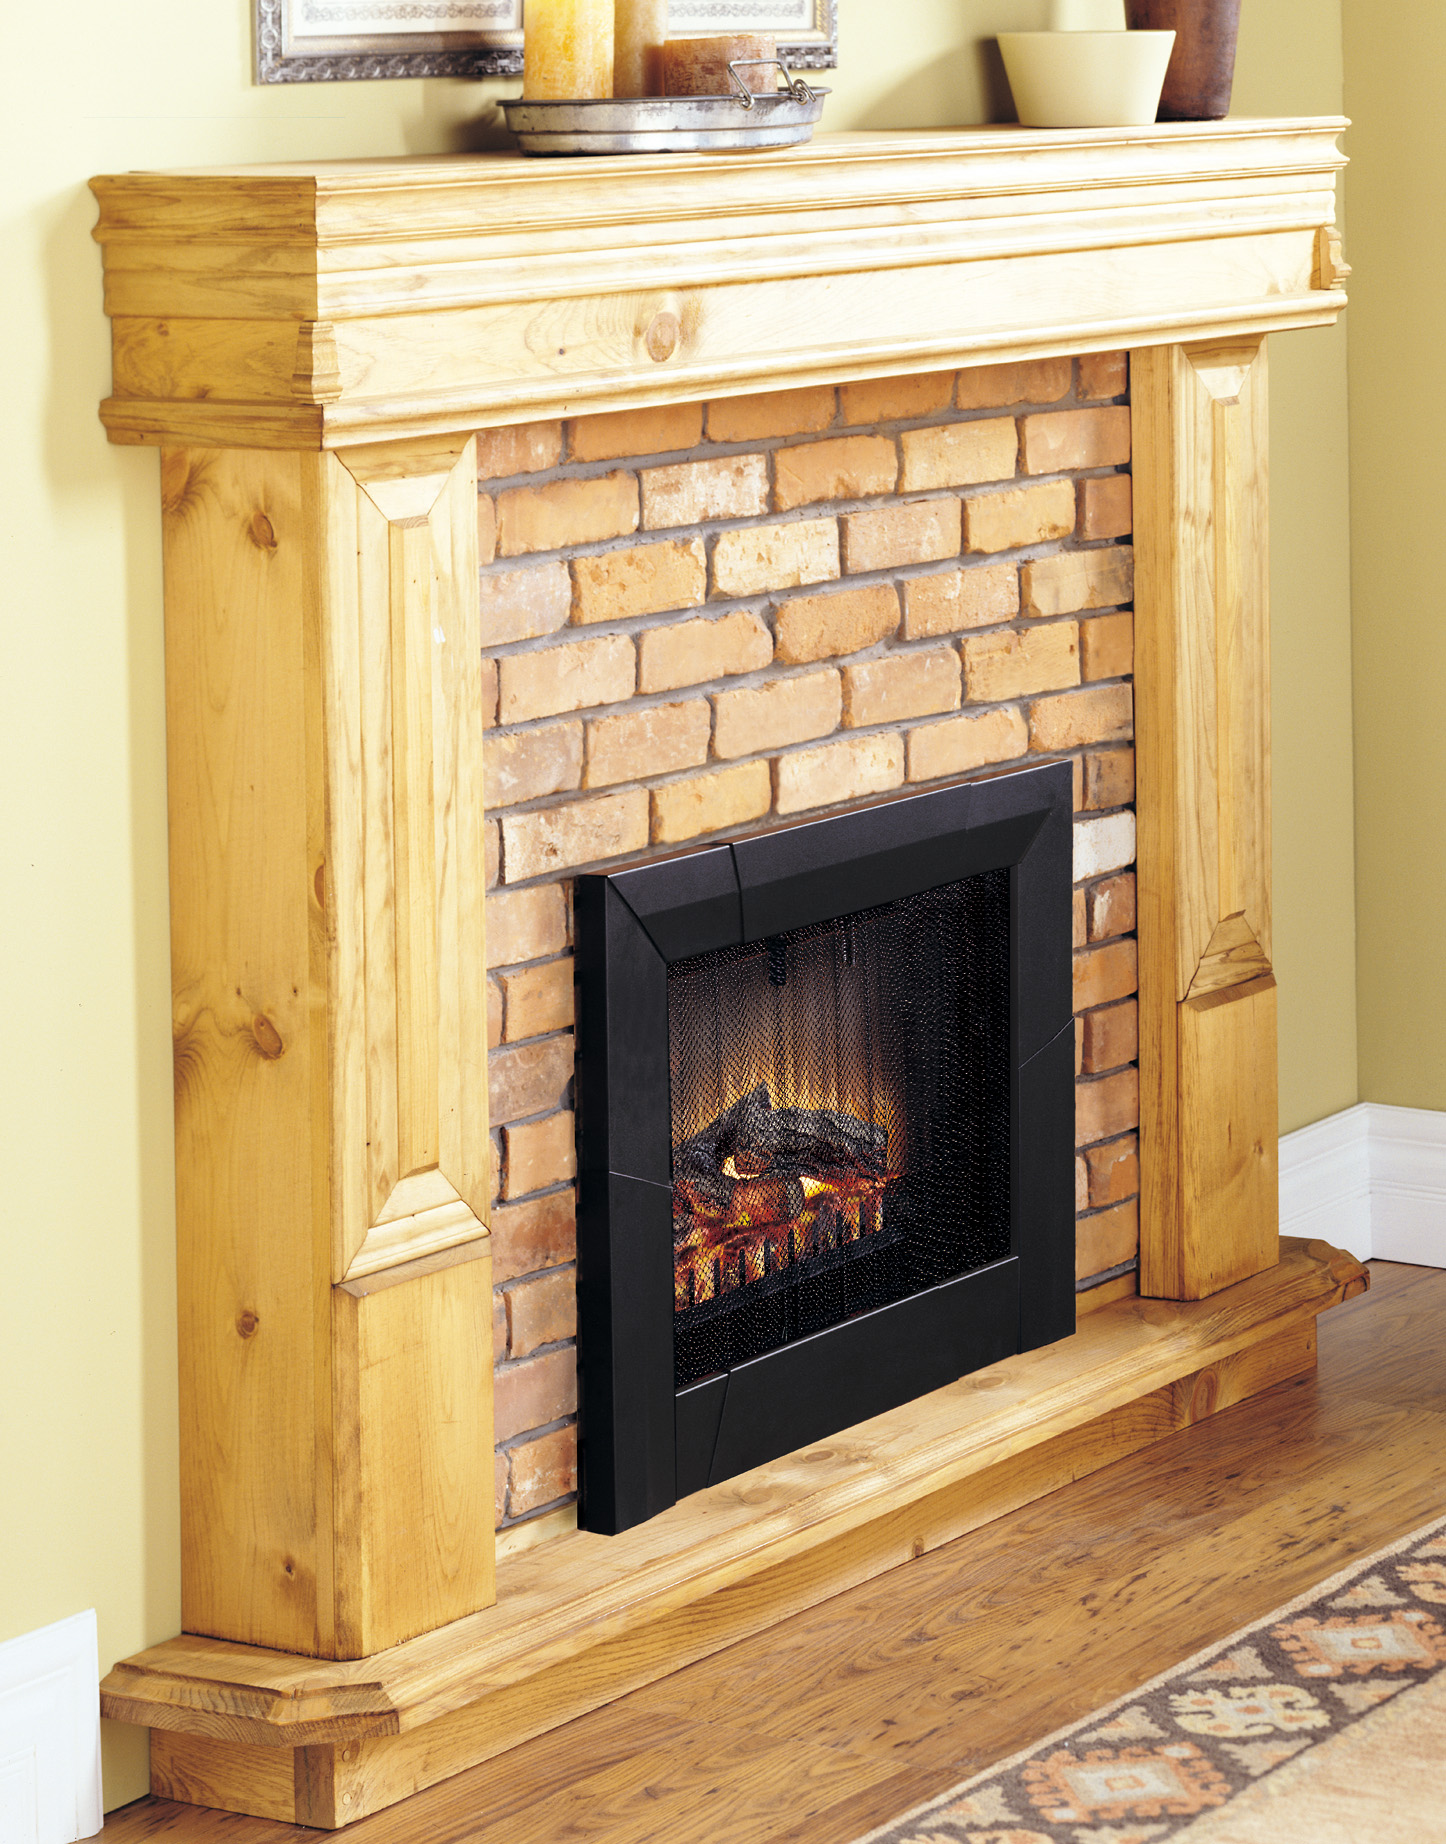 Dimplex Standard 23 Quot Log Set Electric Fireplace Insert